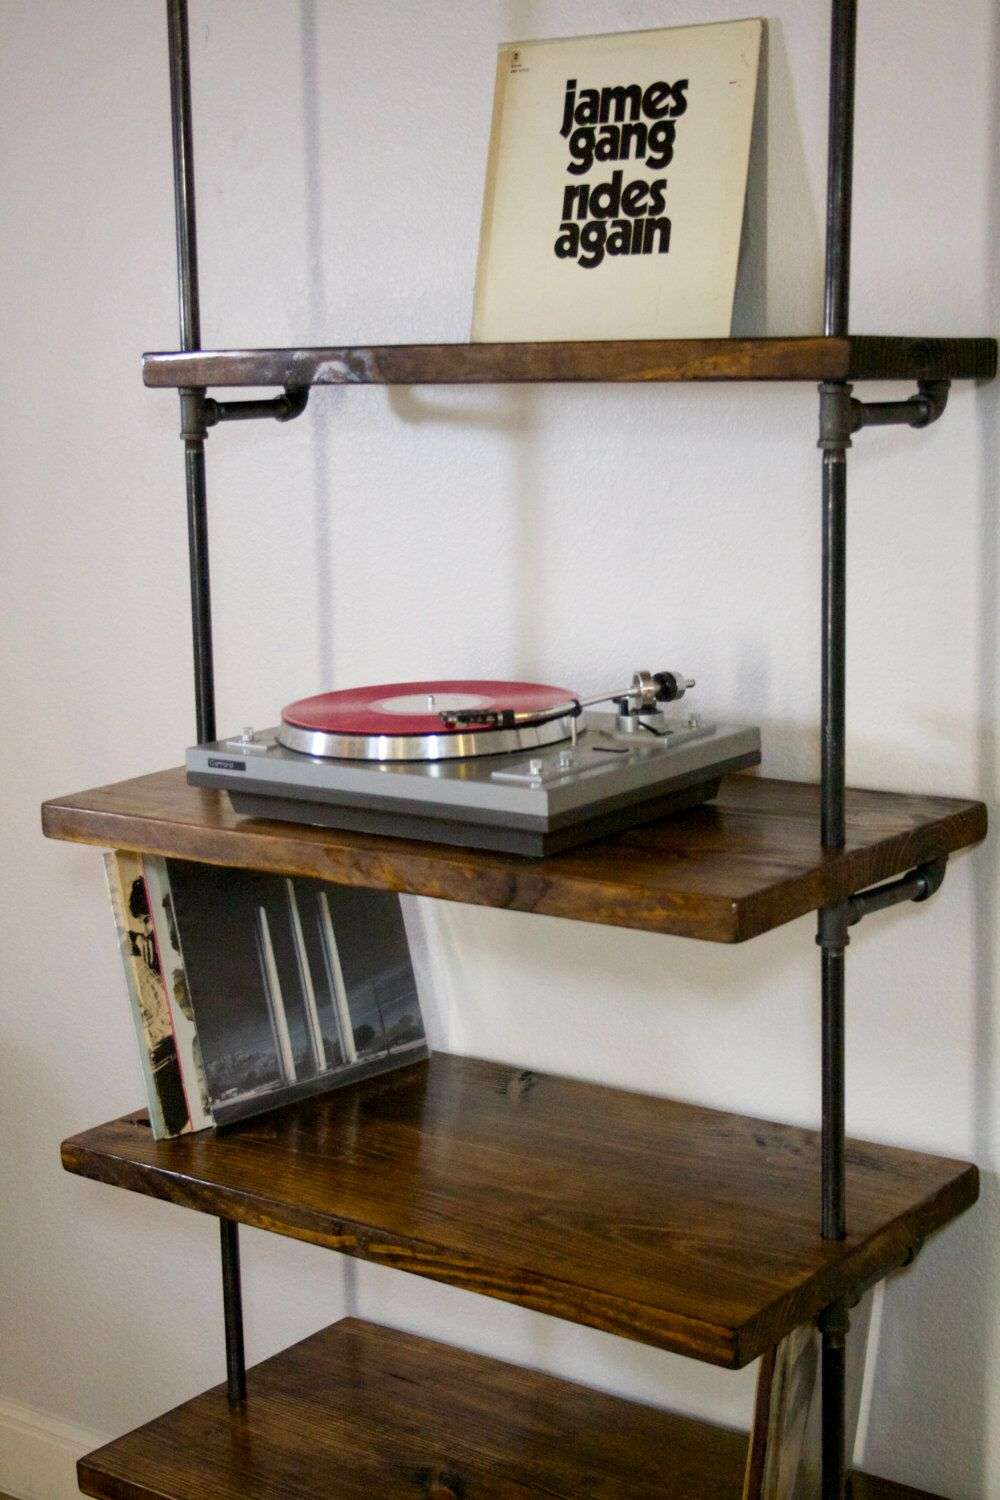 Industrial Record Shelving Unit Bookcase  Modern Record/ Turntable Storage  Shelving Shelf Industrial Furniture ,